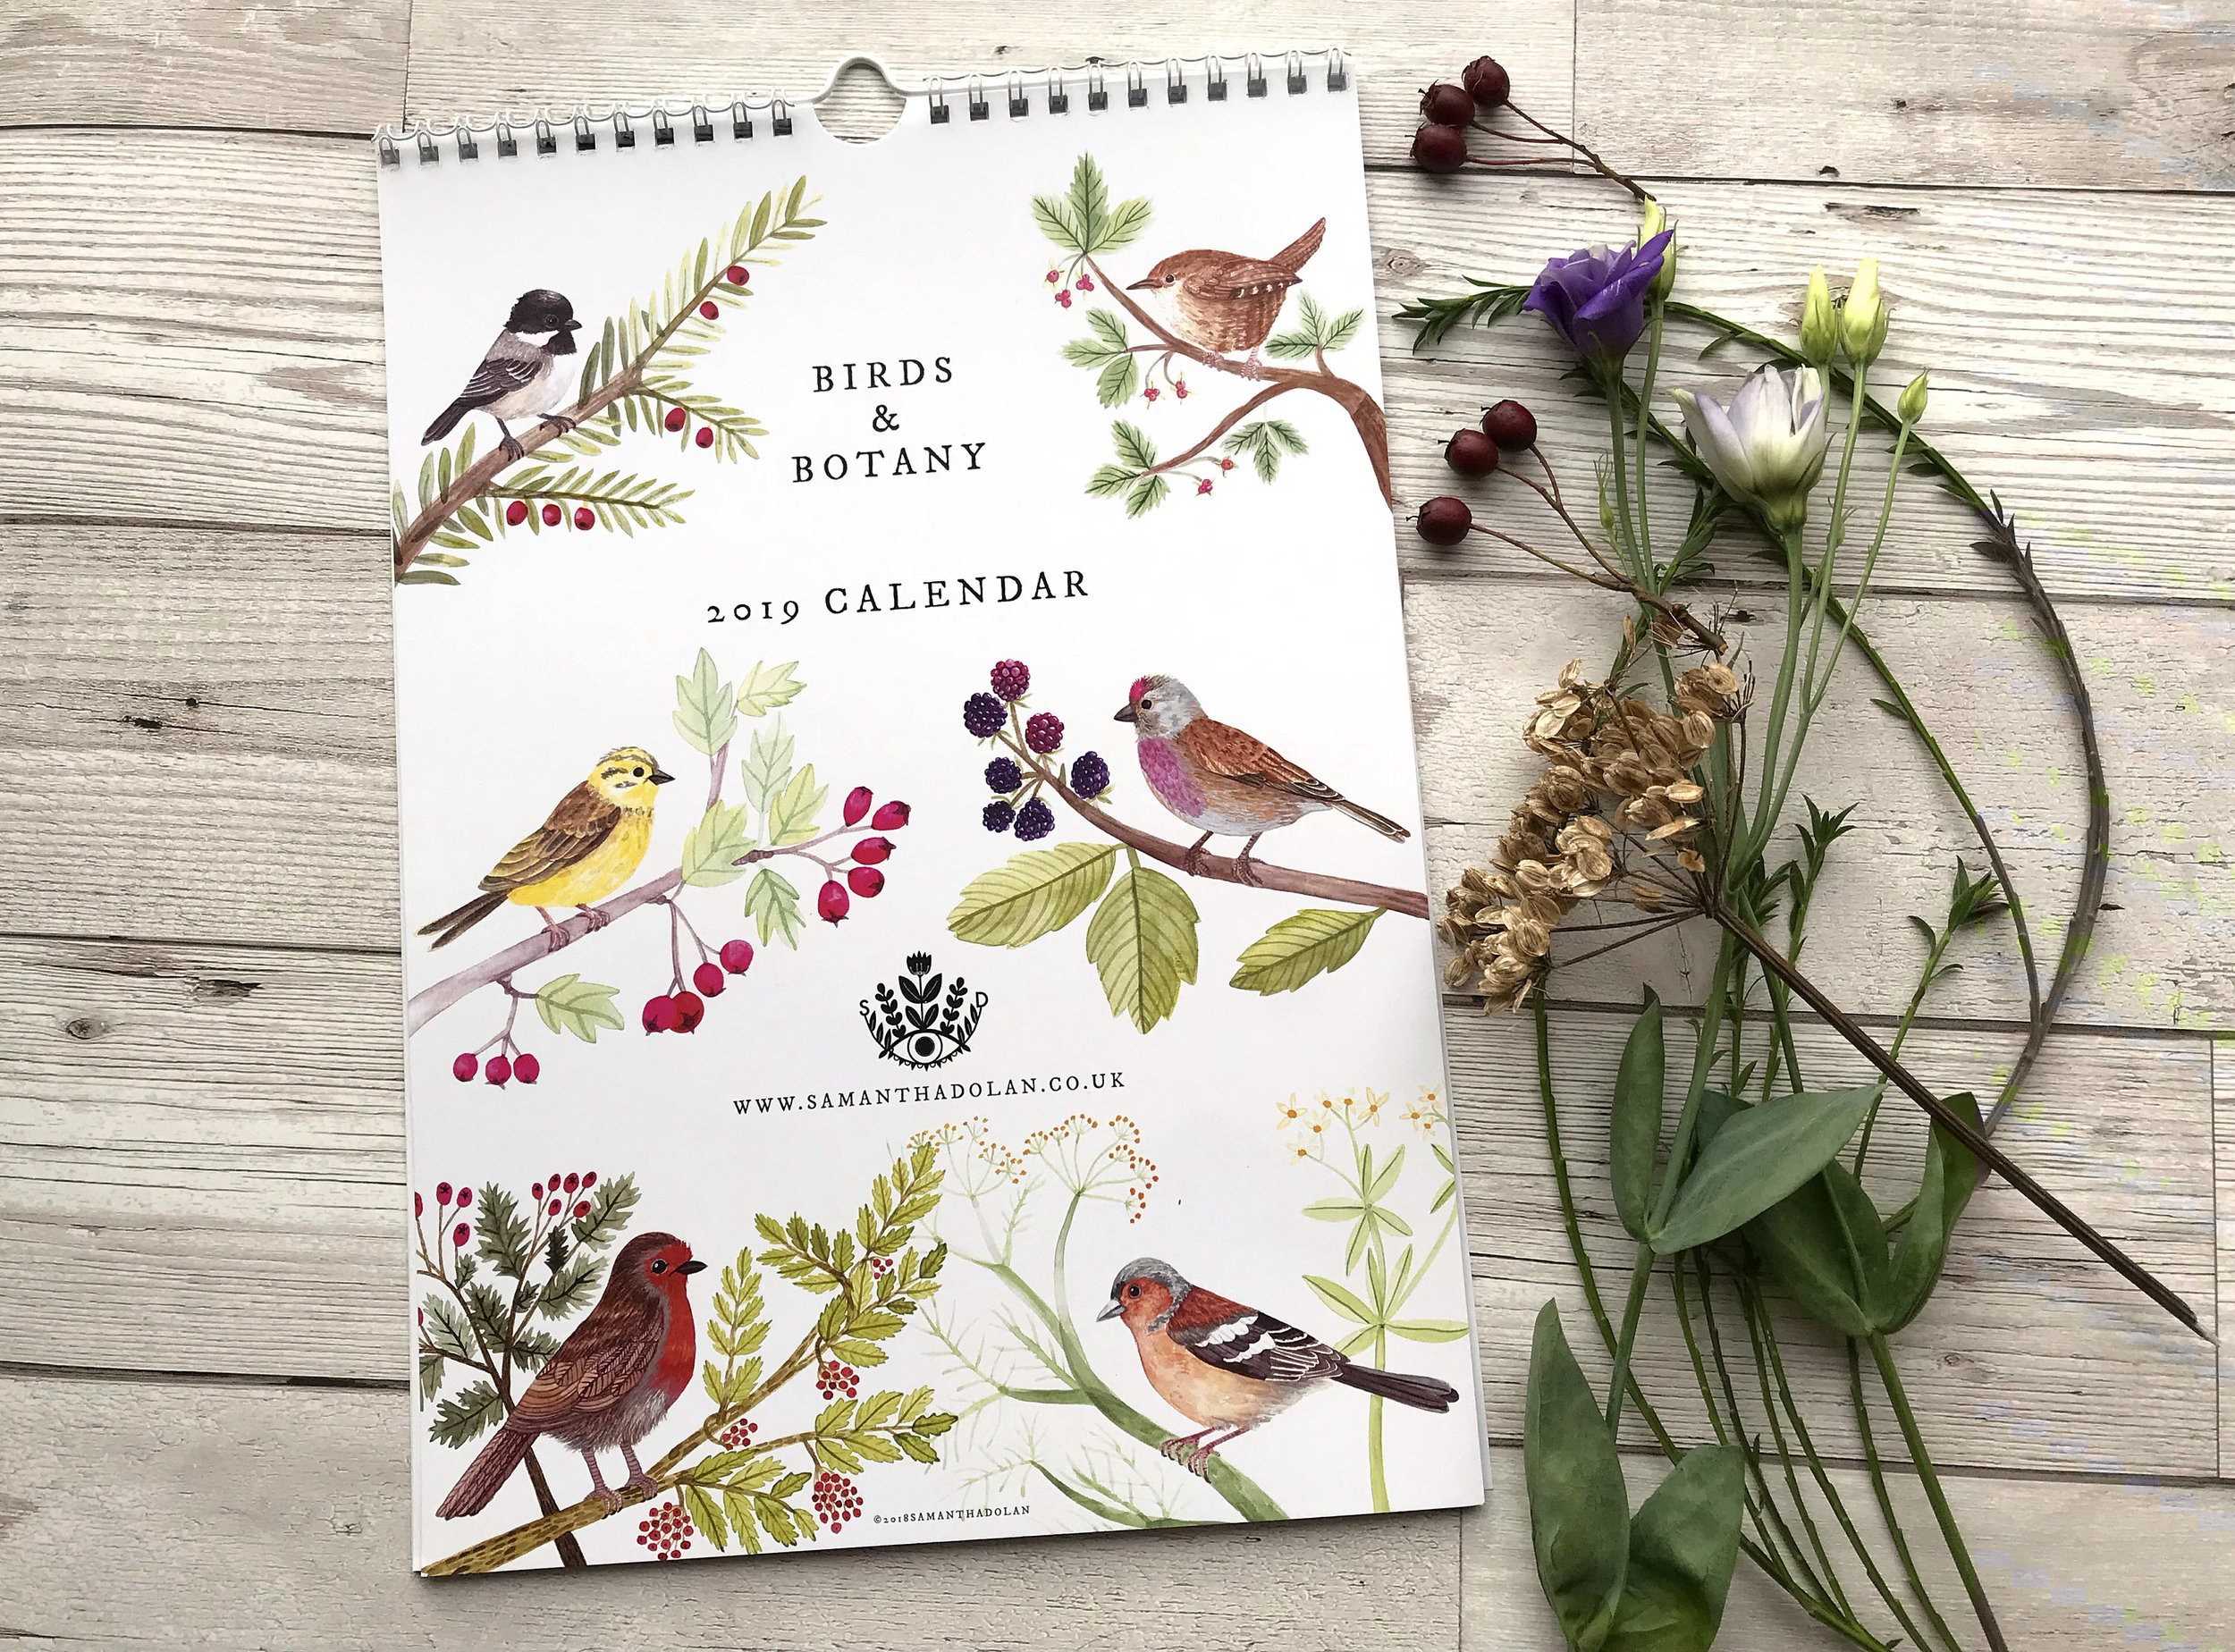 2019 Calendar now available in my shop.